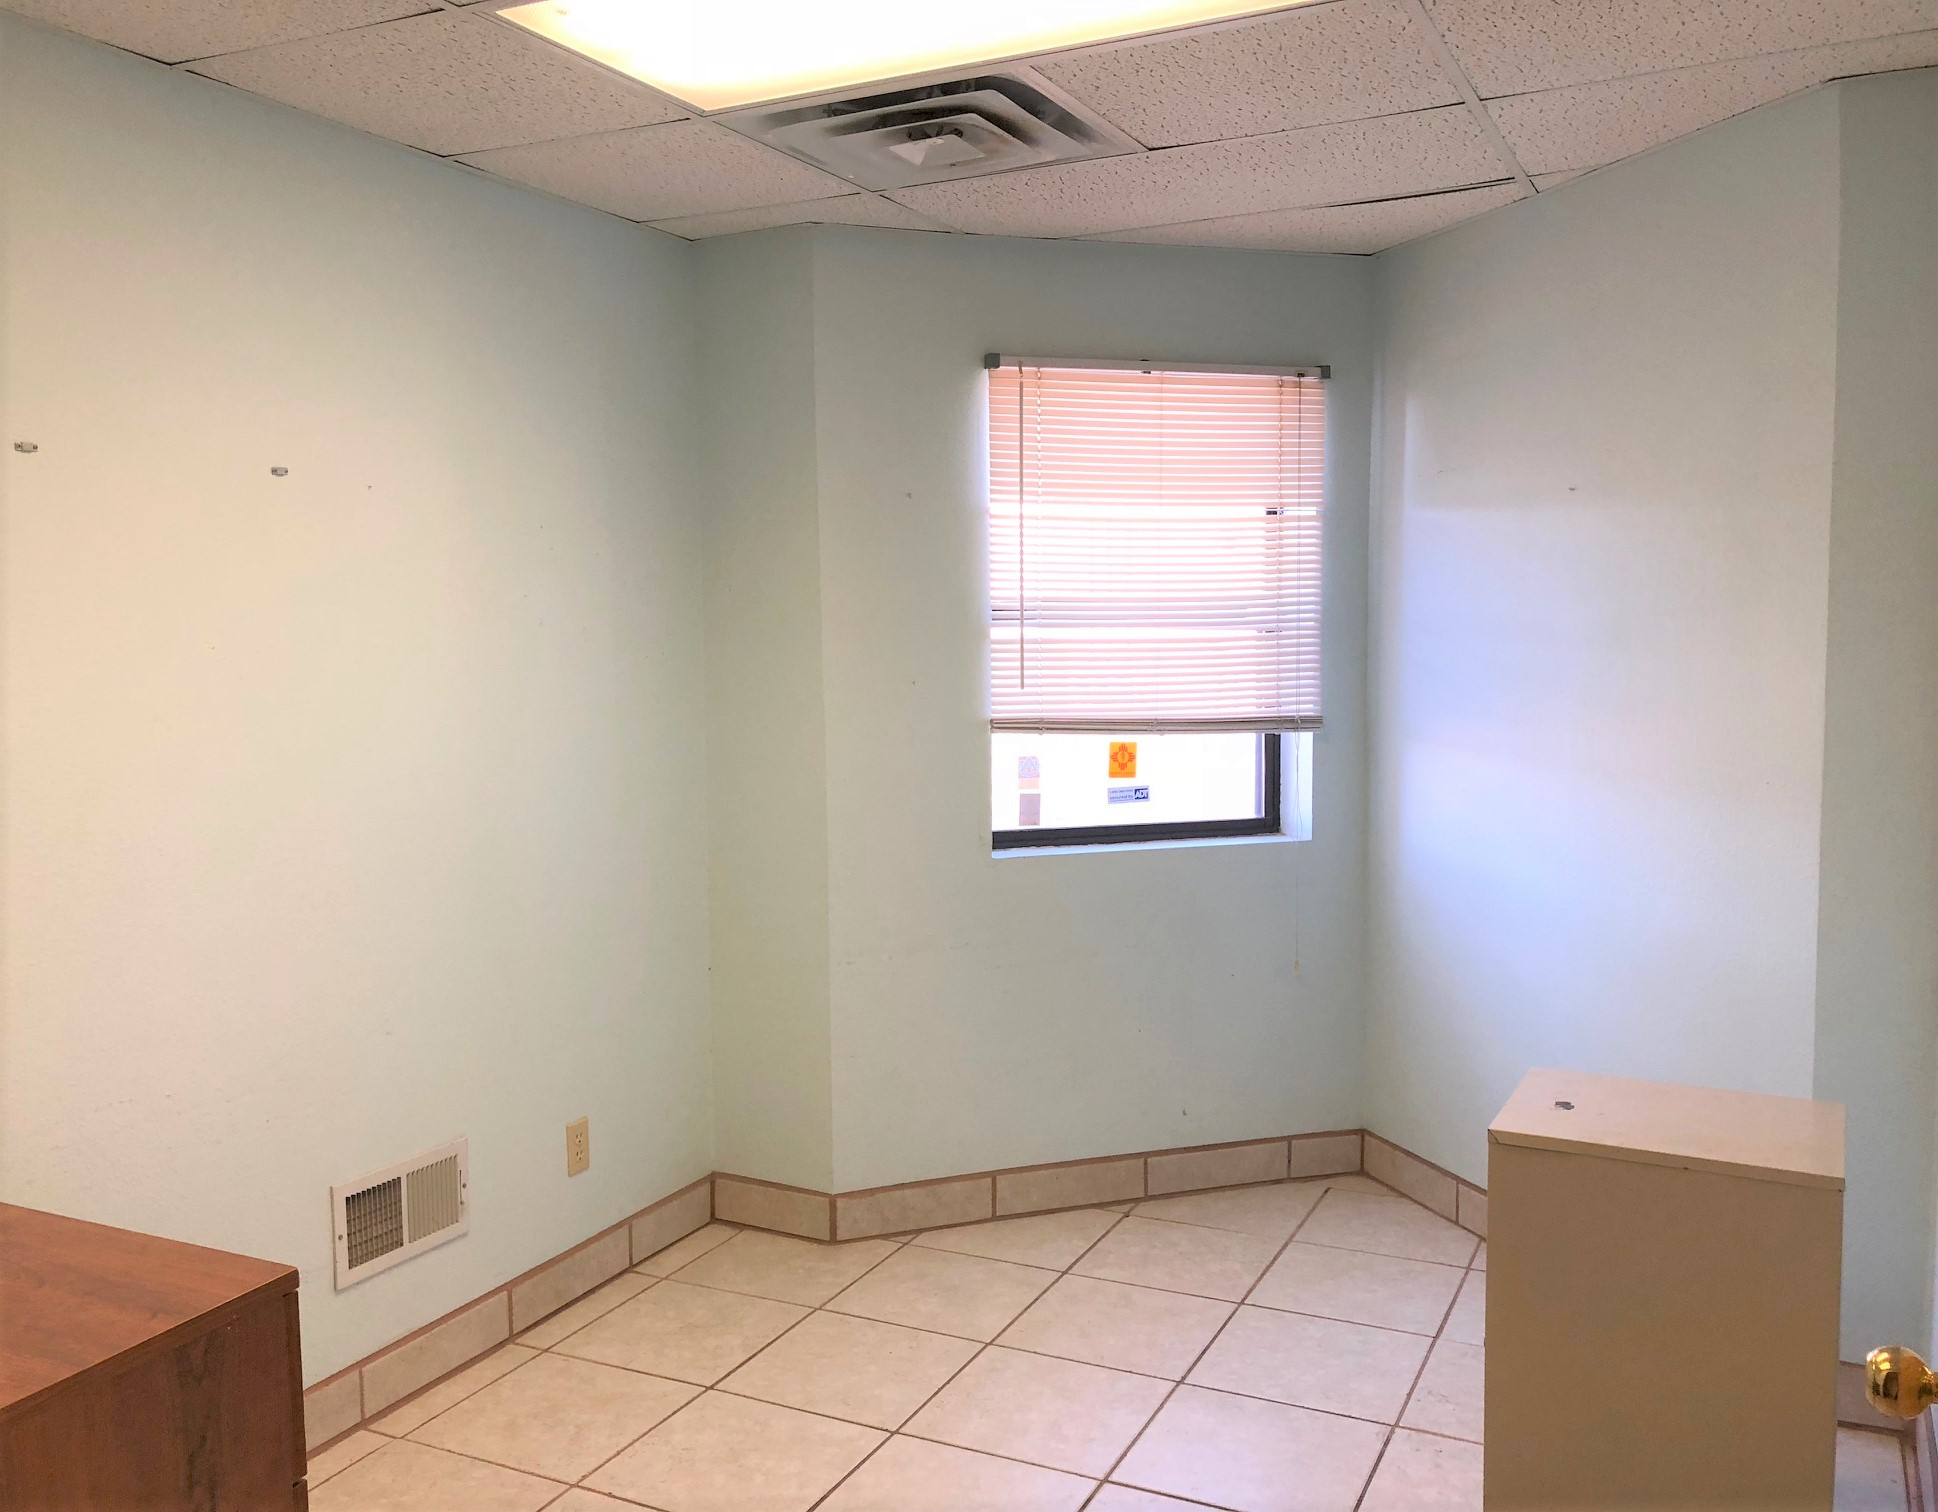 4035 PEGGY RD, RIO RANCHO, New Mexico 87124, ,Office,For Sale,PEGGY RD,1095